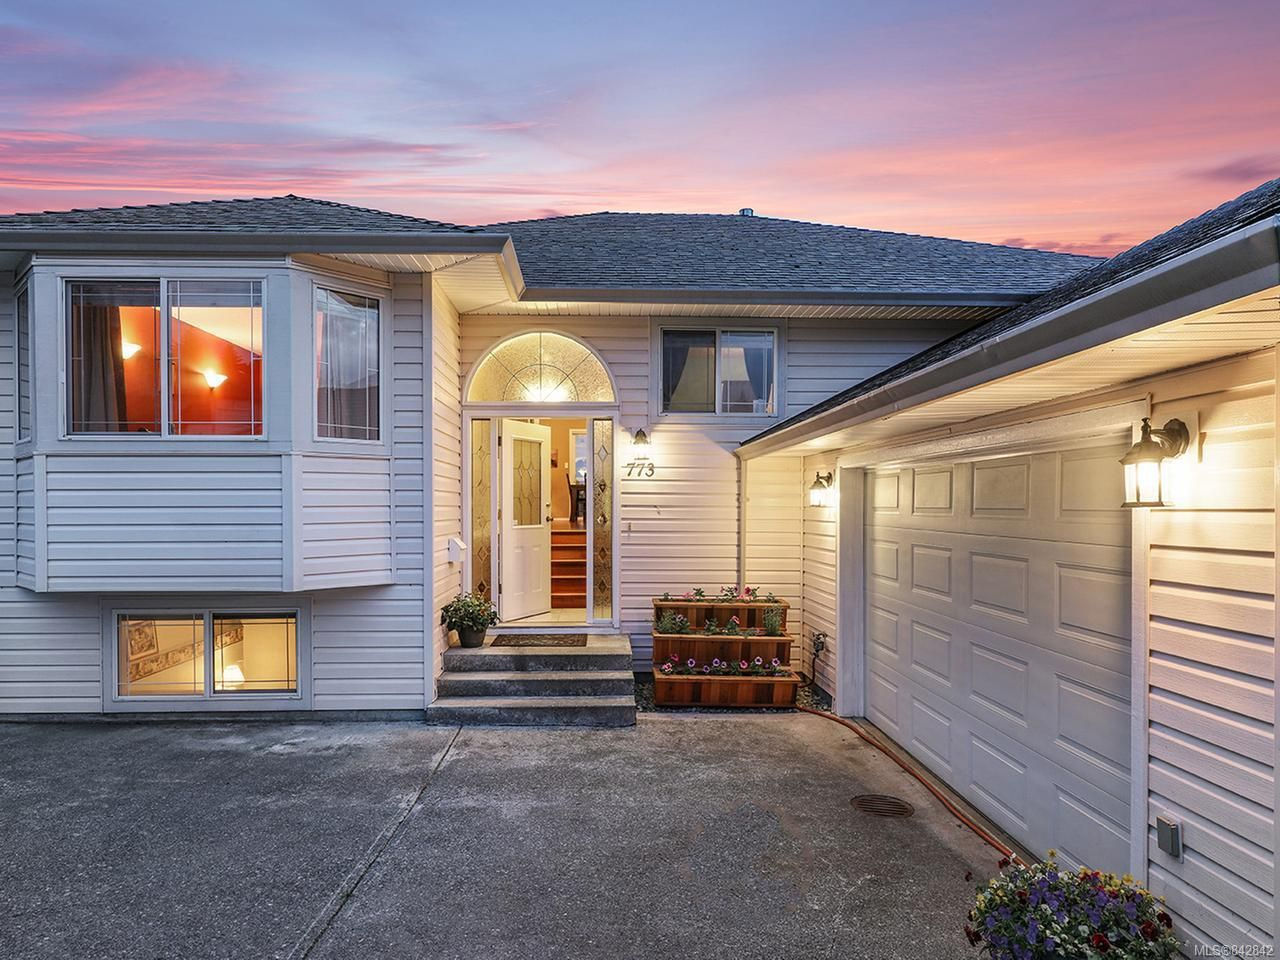 Main Photo: 773 Serengeti Ave in CAMPBELL RIVER: CR Campbell River Central House for sale (Campbell River)  : MLS®# 842842